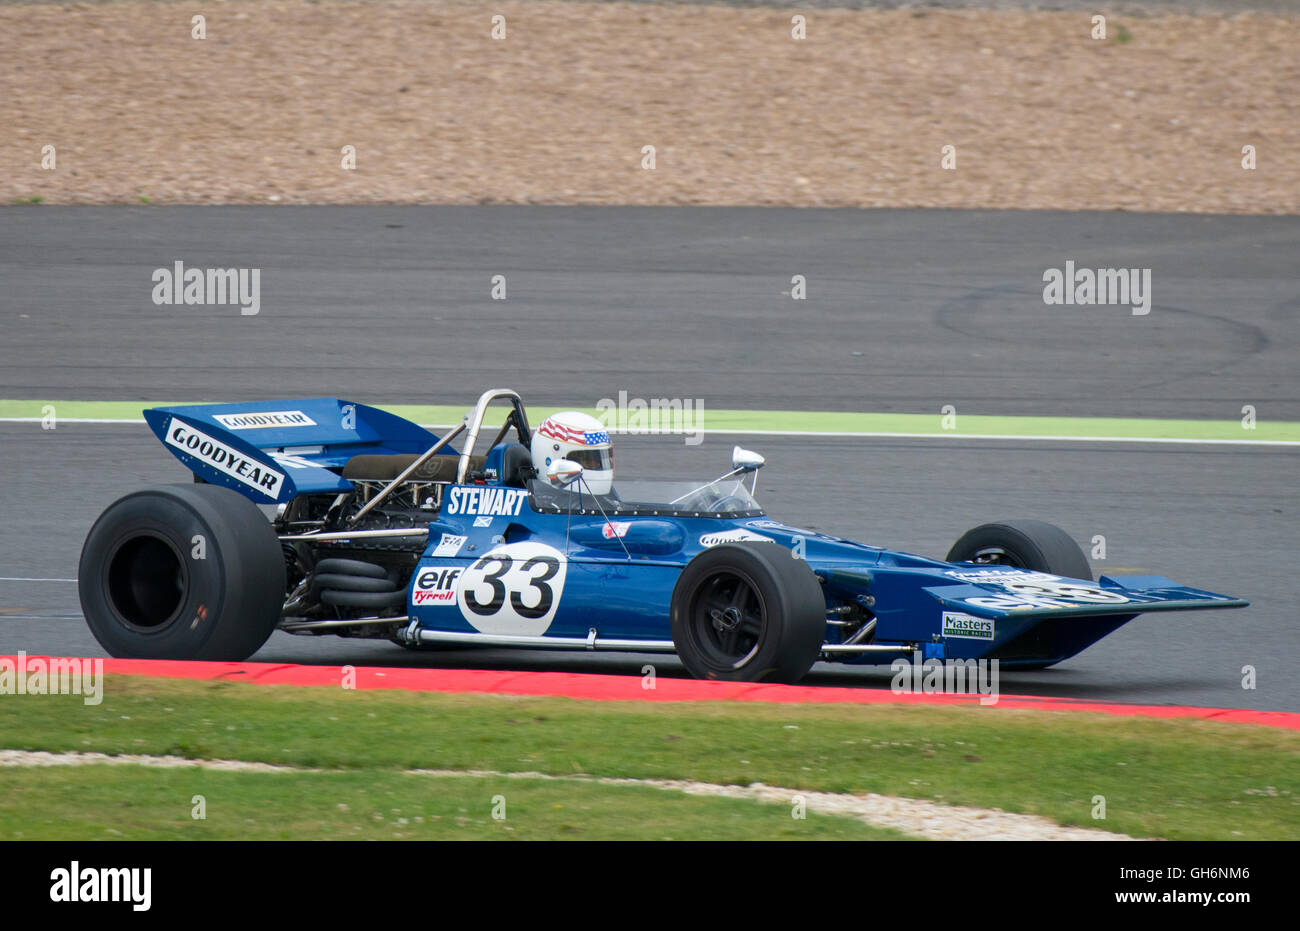 John Delane driving Tyrrell 001 in the FIA Masters Historic Formula 1 race at the 2016 Silverstone Classic event, - Stock Image